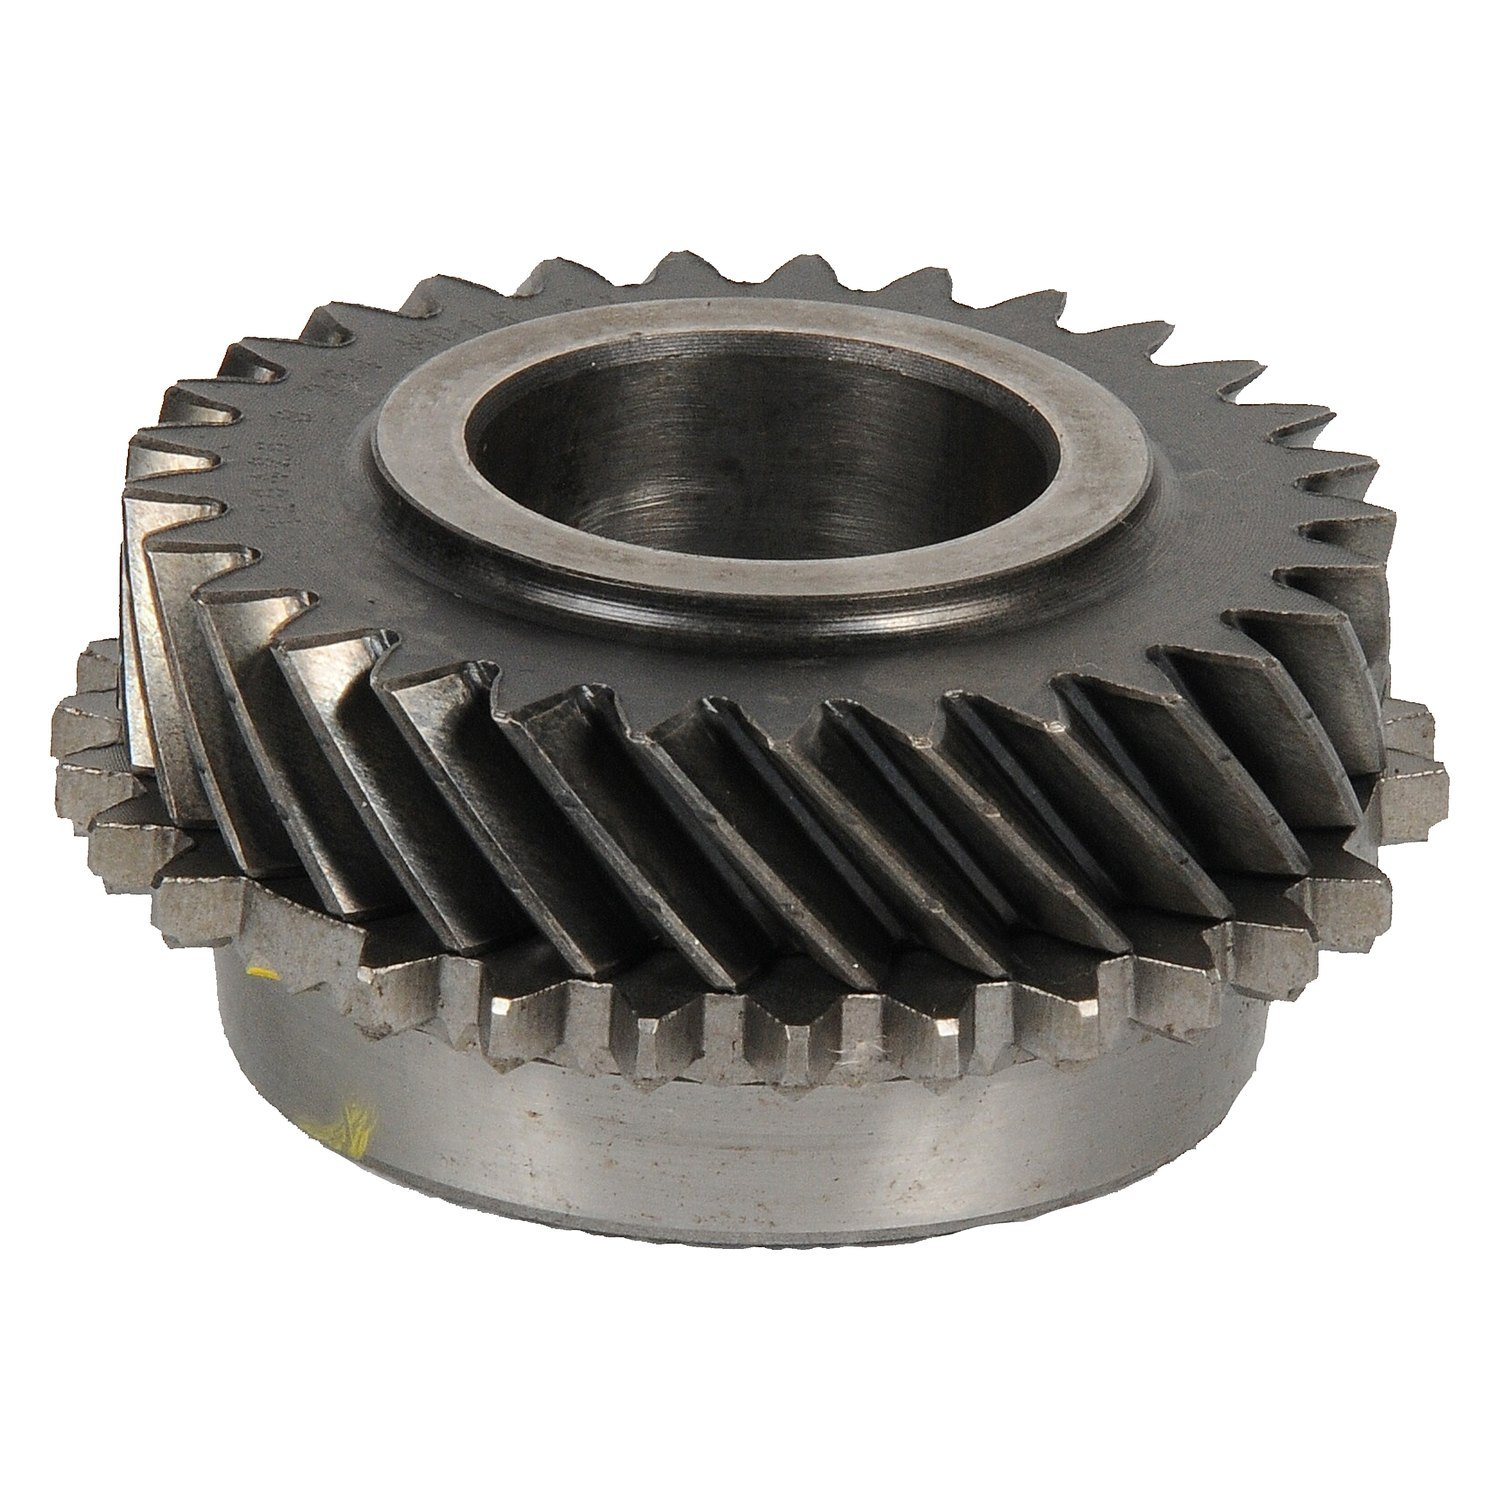 5 speed manual transmission for chevy 350-2921